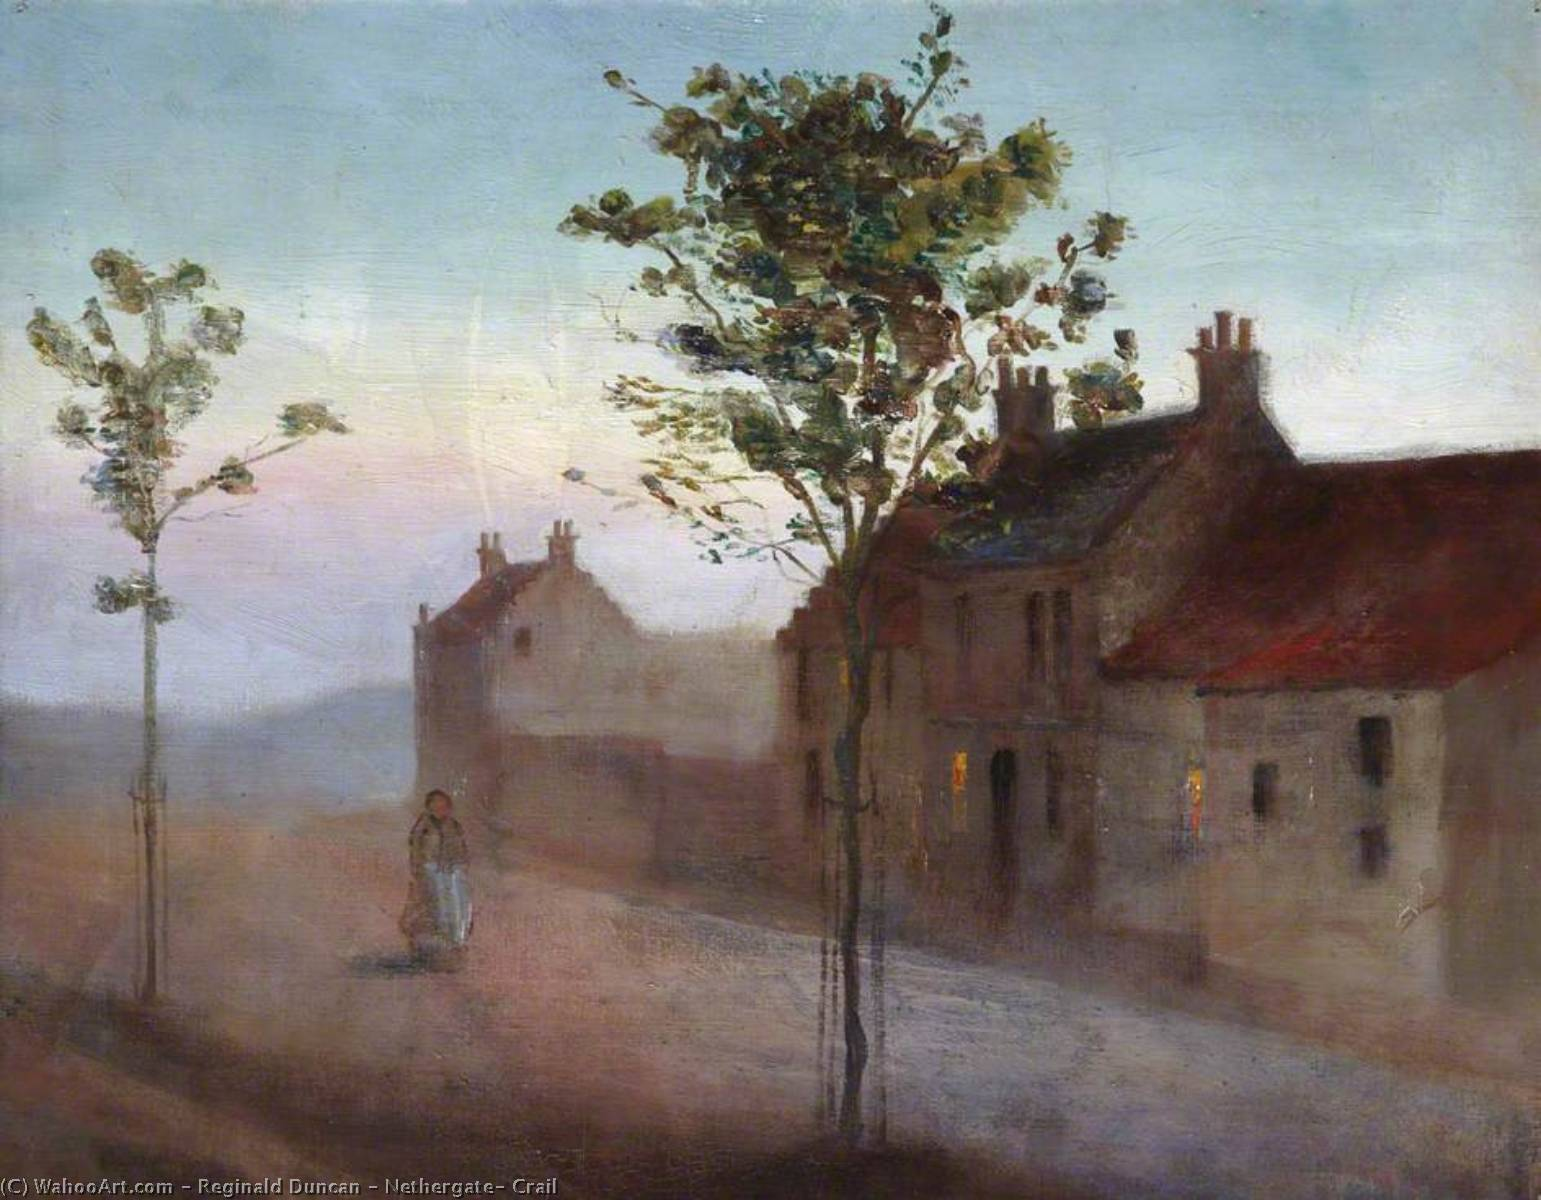 Nethergate, Crail by Reginald Duncan | Oil Painting | WahooArt.com